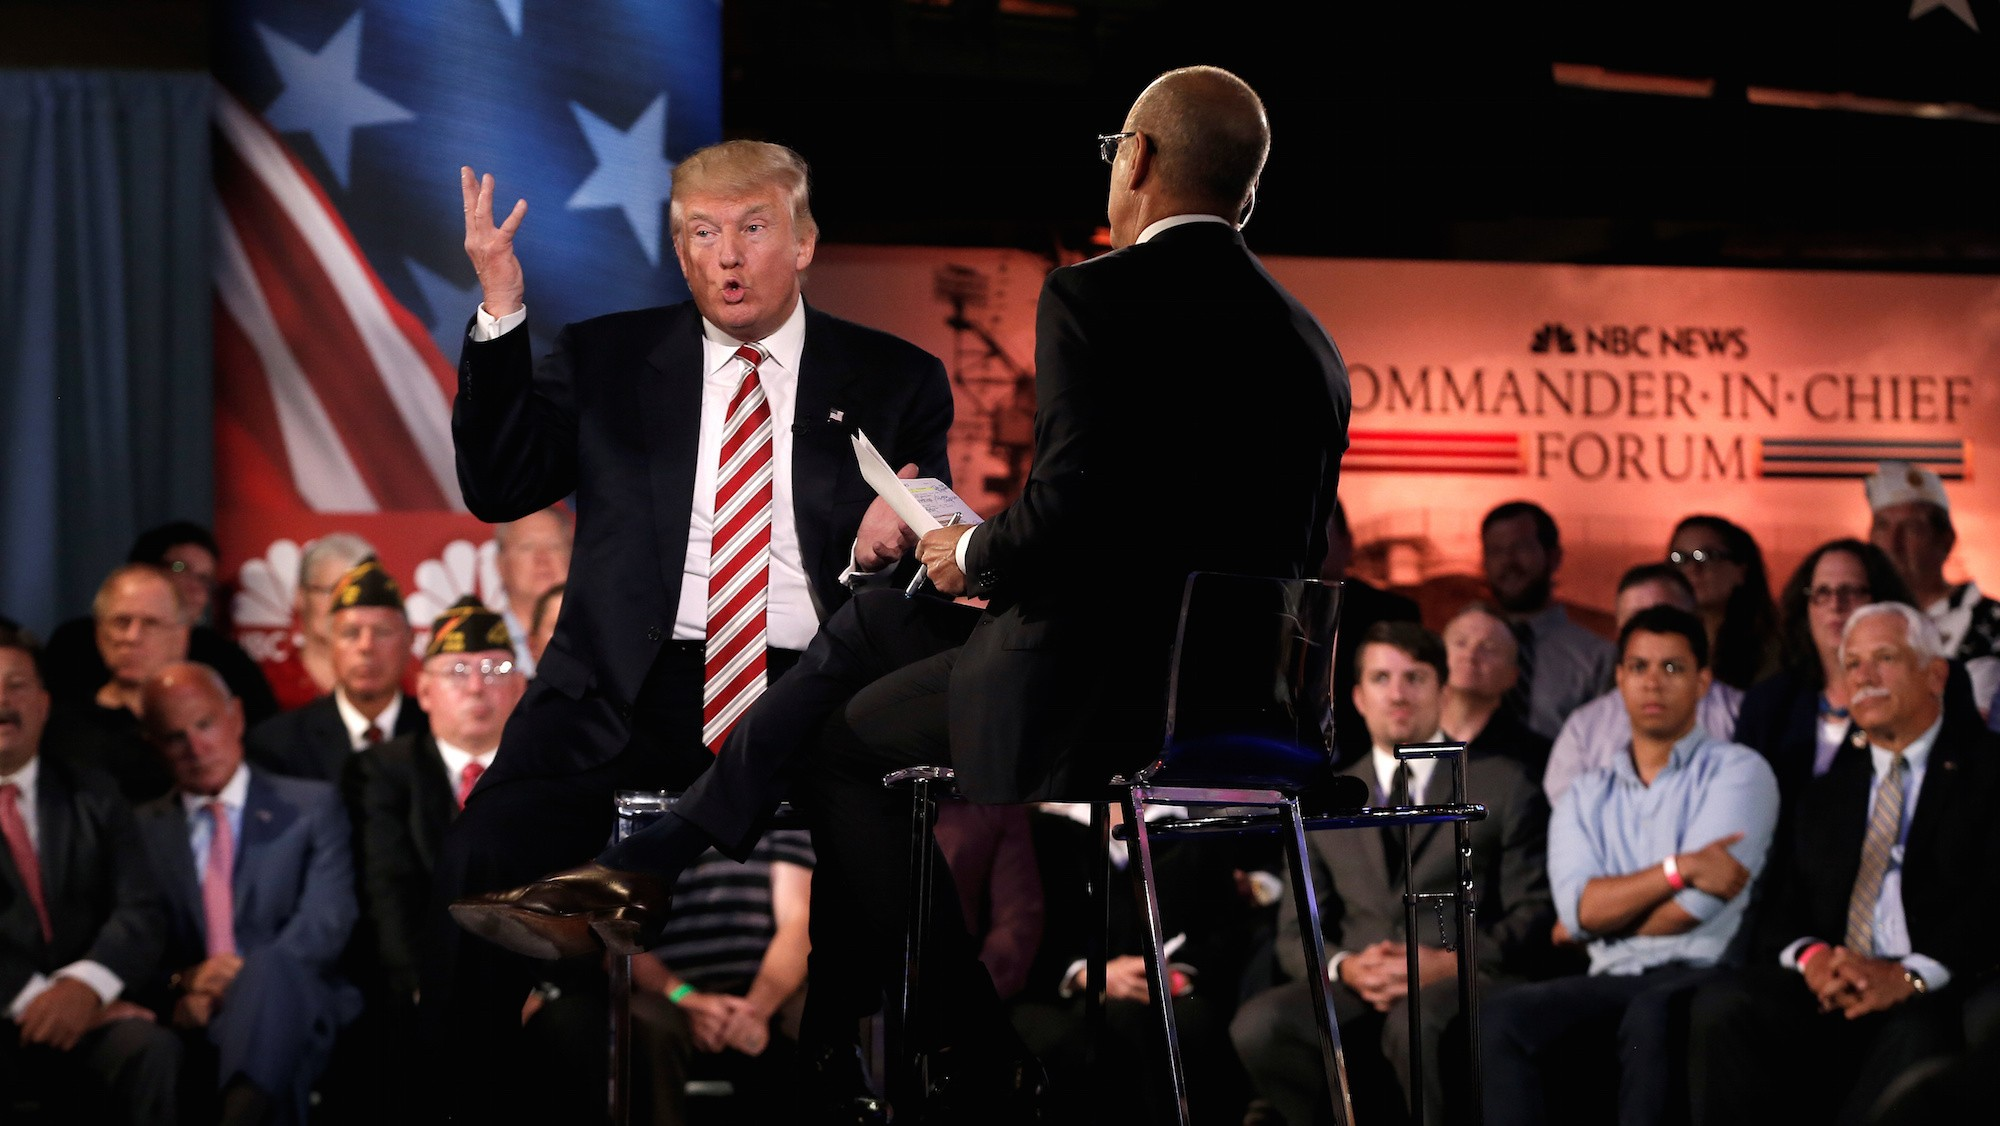 Trump and Clinton share the stage (sort of) at the Commander-in-Chief Forum